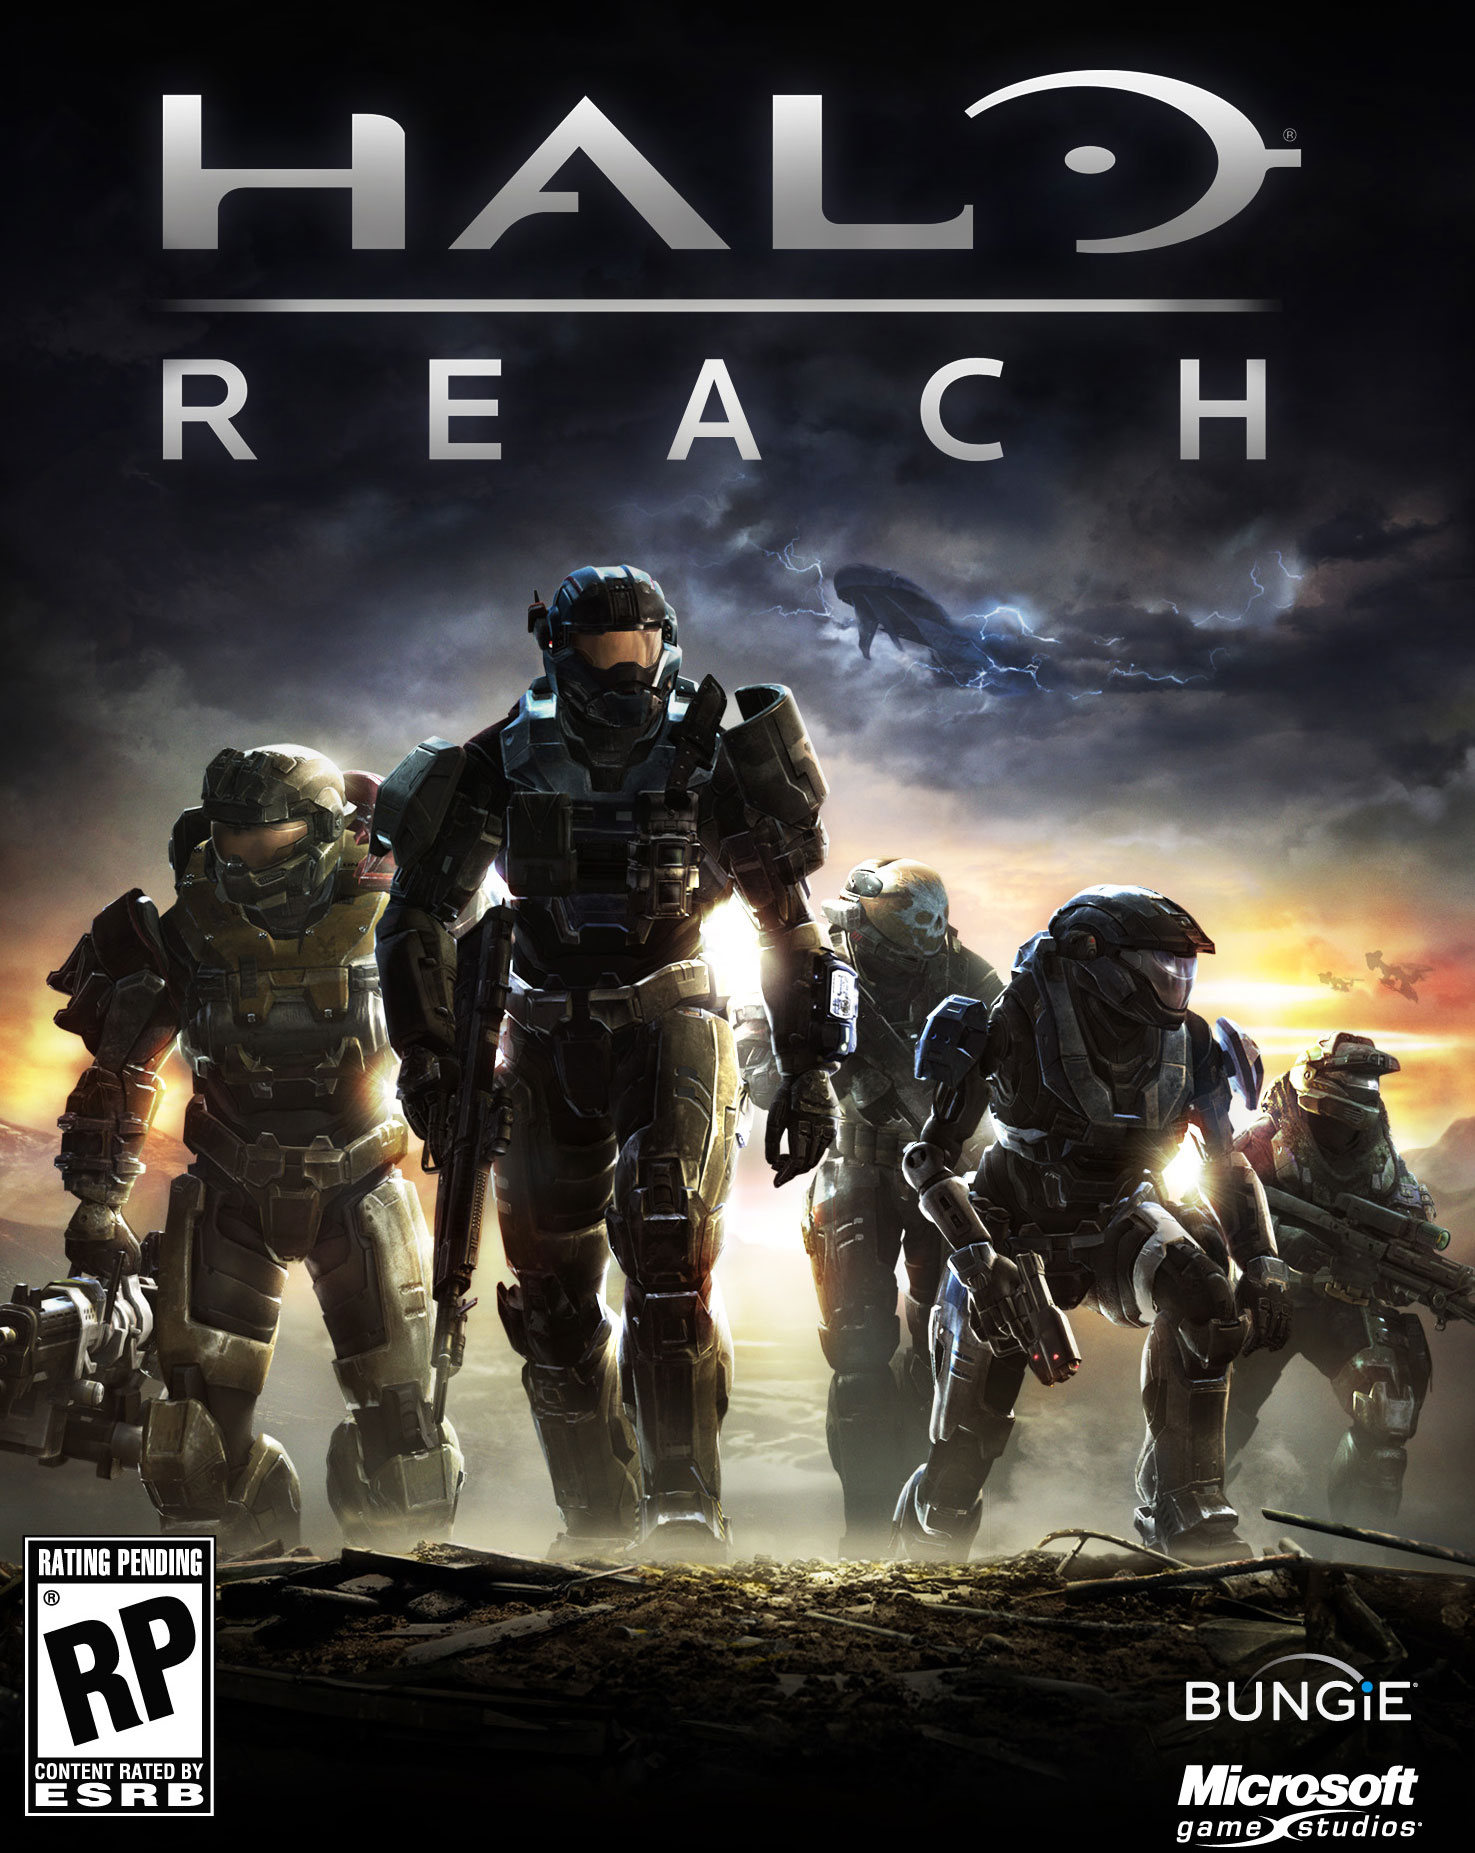 Halo Reach Poster